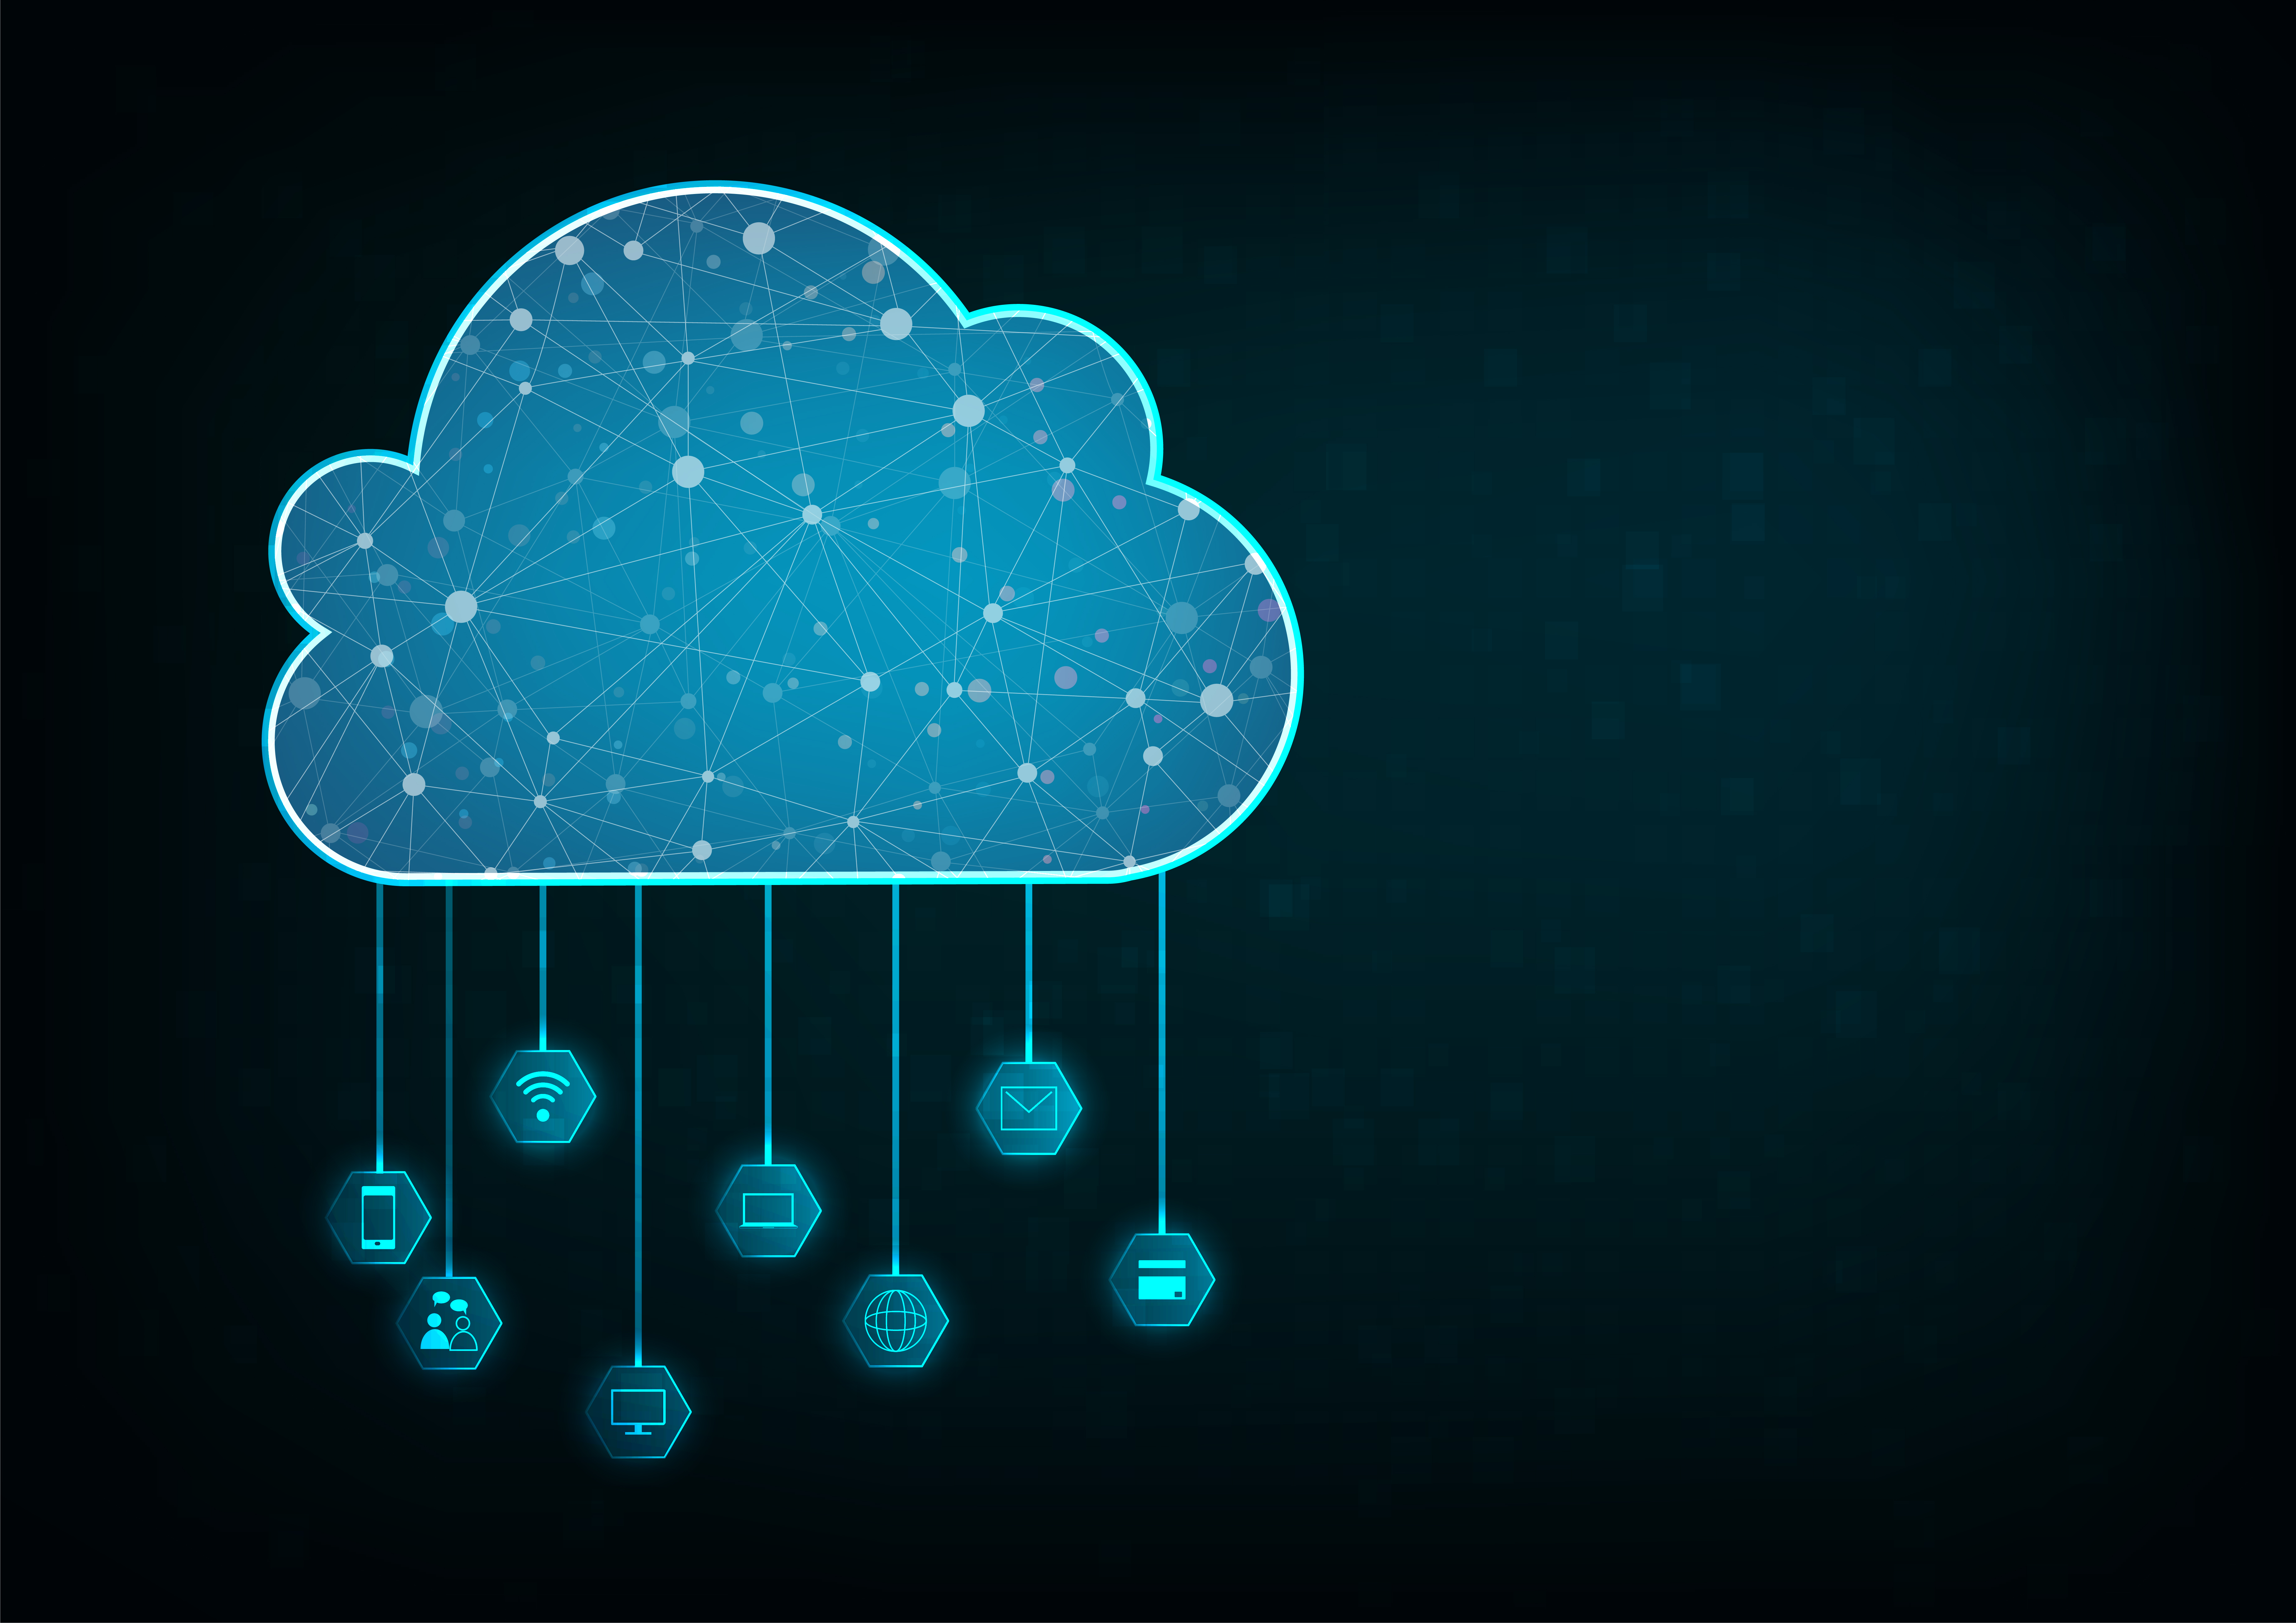 Cloud Computing Concept Abstract Cloud Connection Technology Background Download Free Vectors